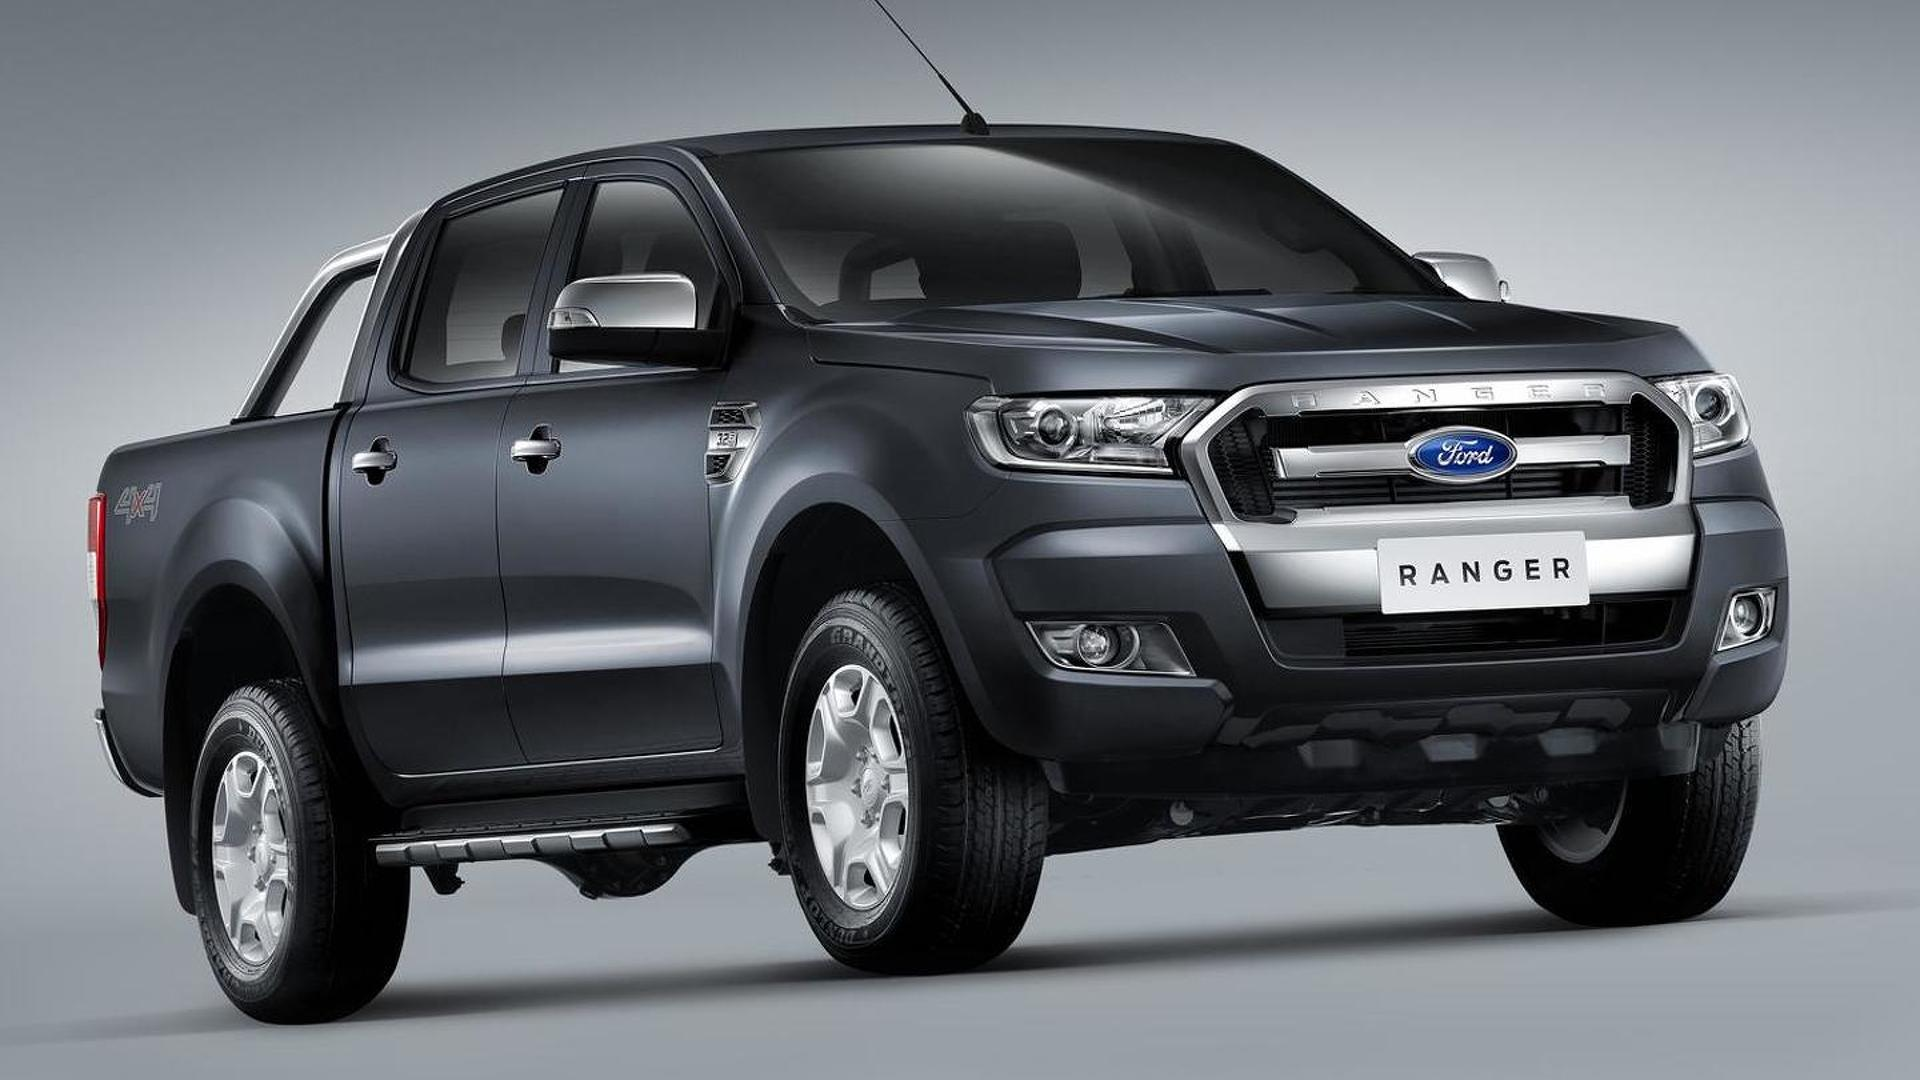 Ford Ranger could return to the US, Bronco revival also rumored